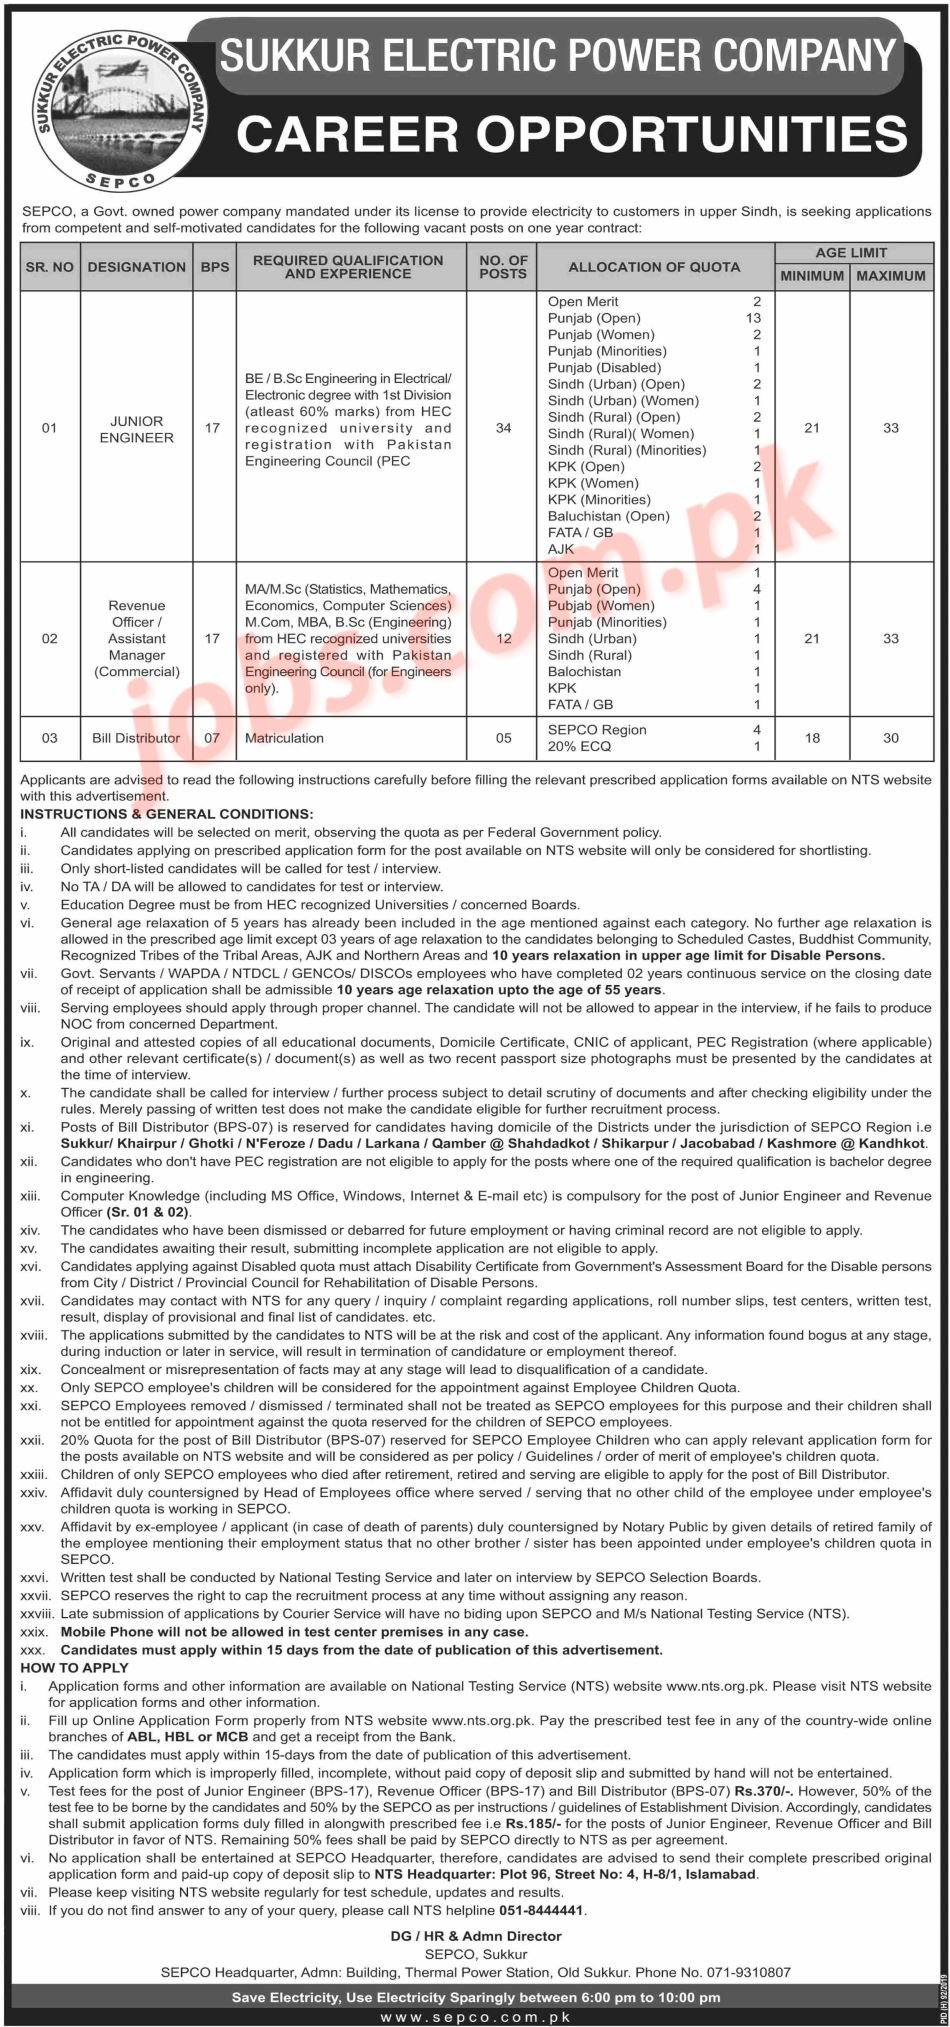 Sukkur Electric Power Company (SEPCO) Jobs 2019 For 51+ Jr Engineers, Bill Distributors And Revenue OfficersFull Time